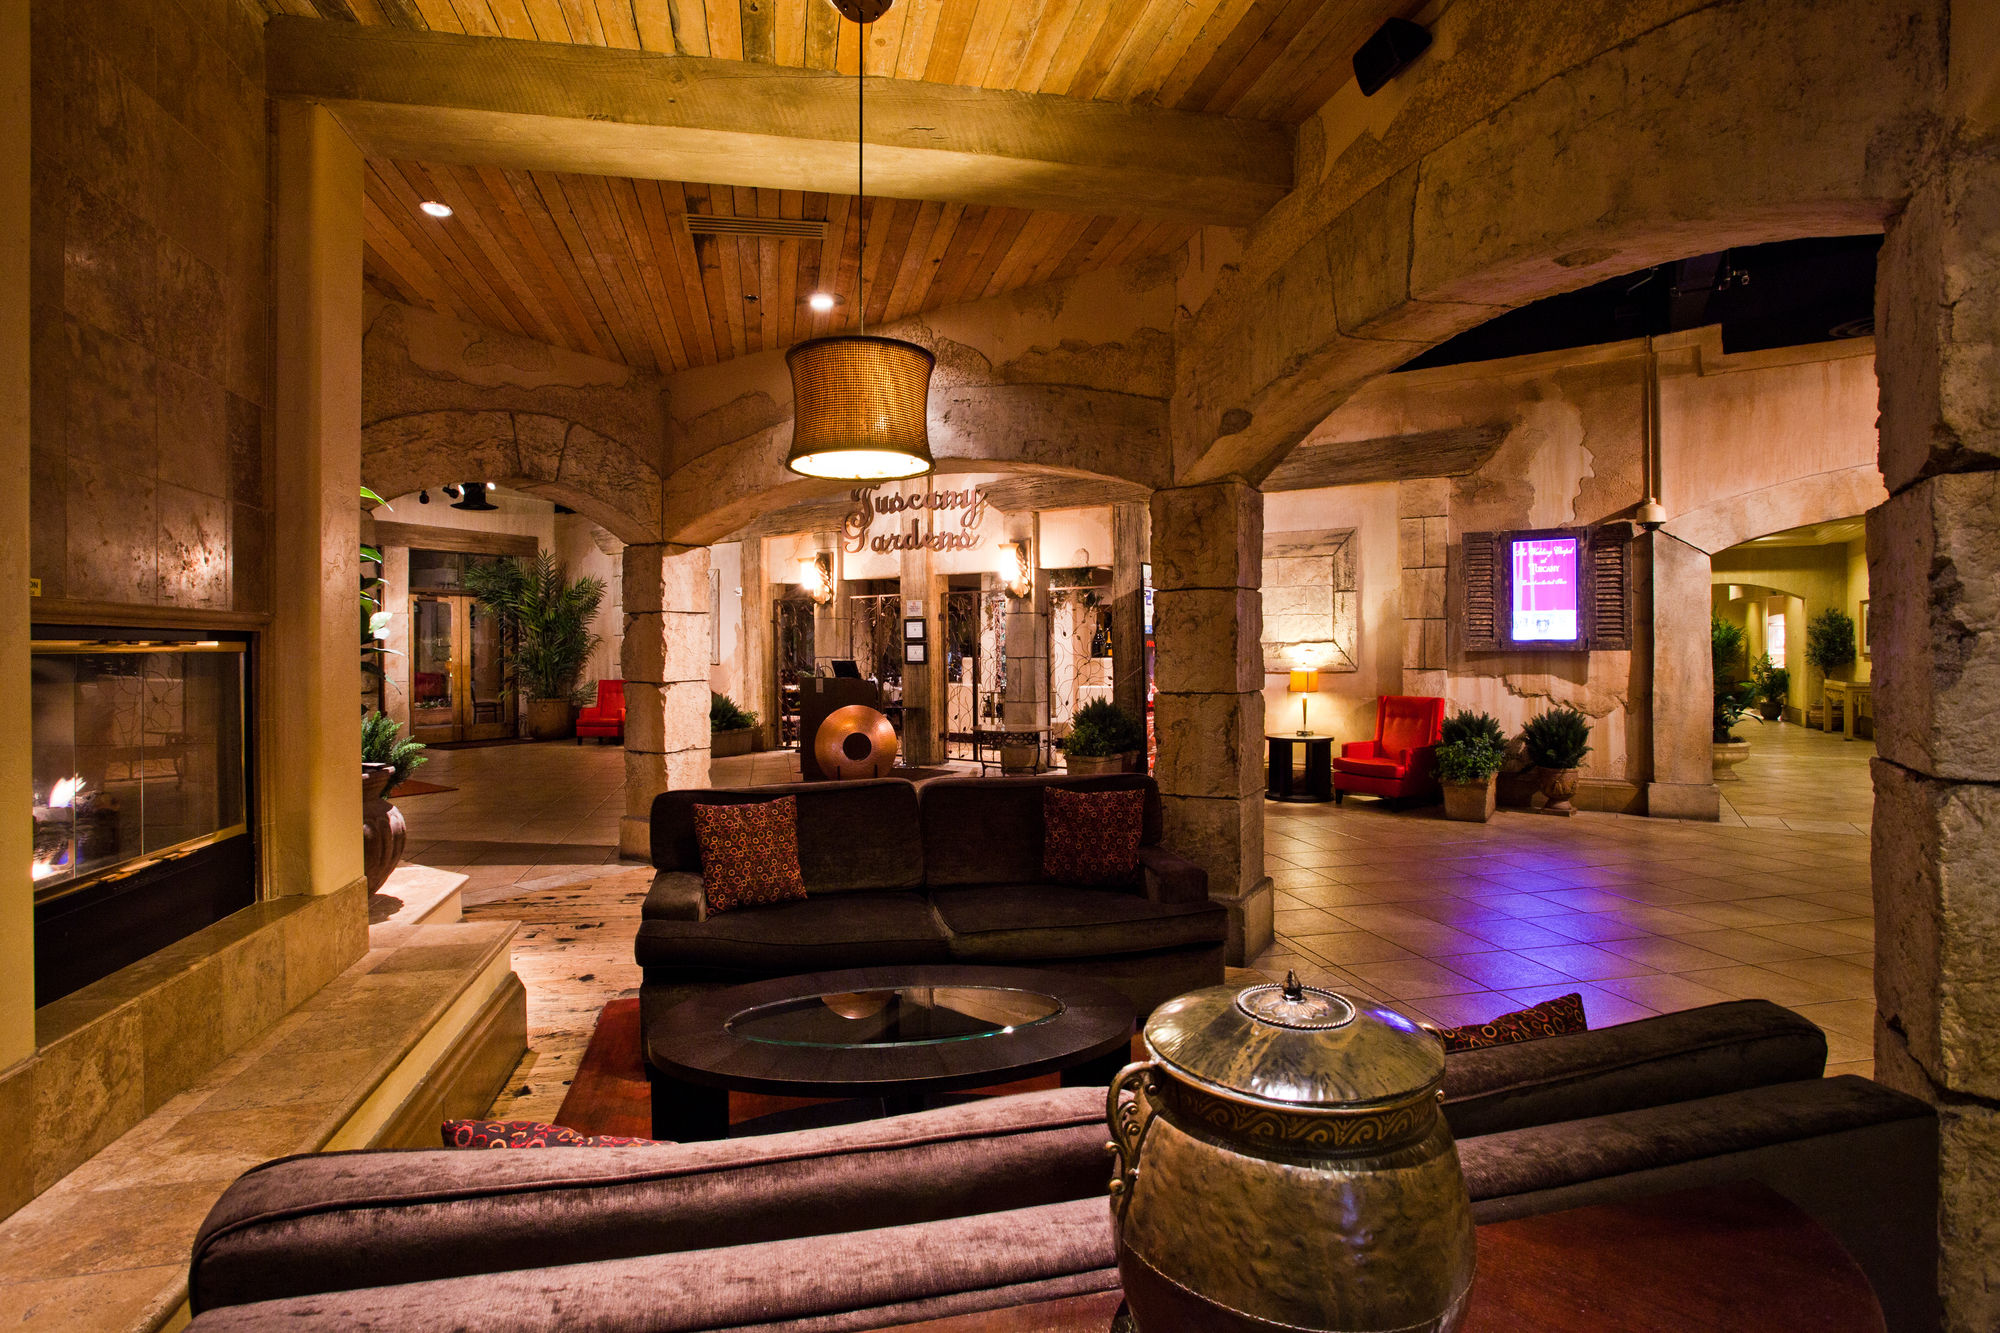 Discount Coupon for Tuscany Suites & Casino in Las Vegas ...